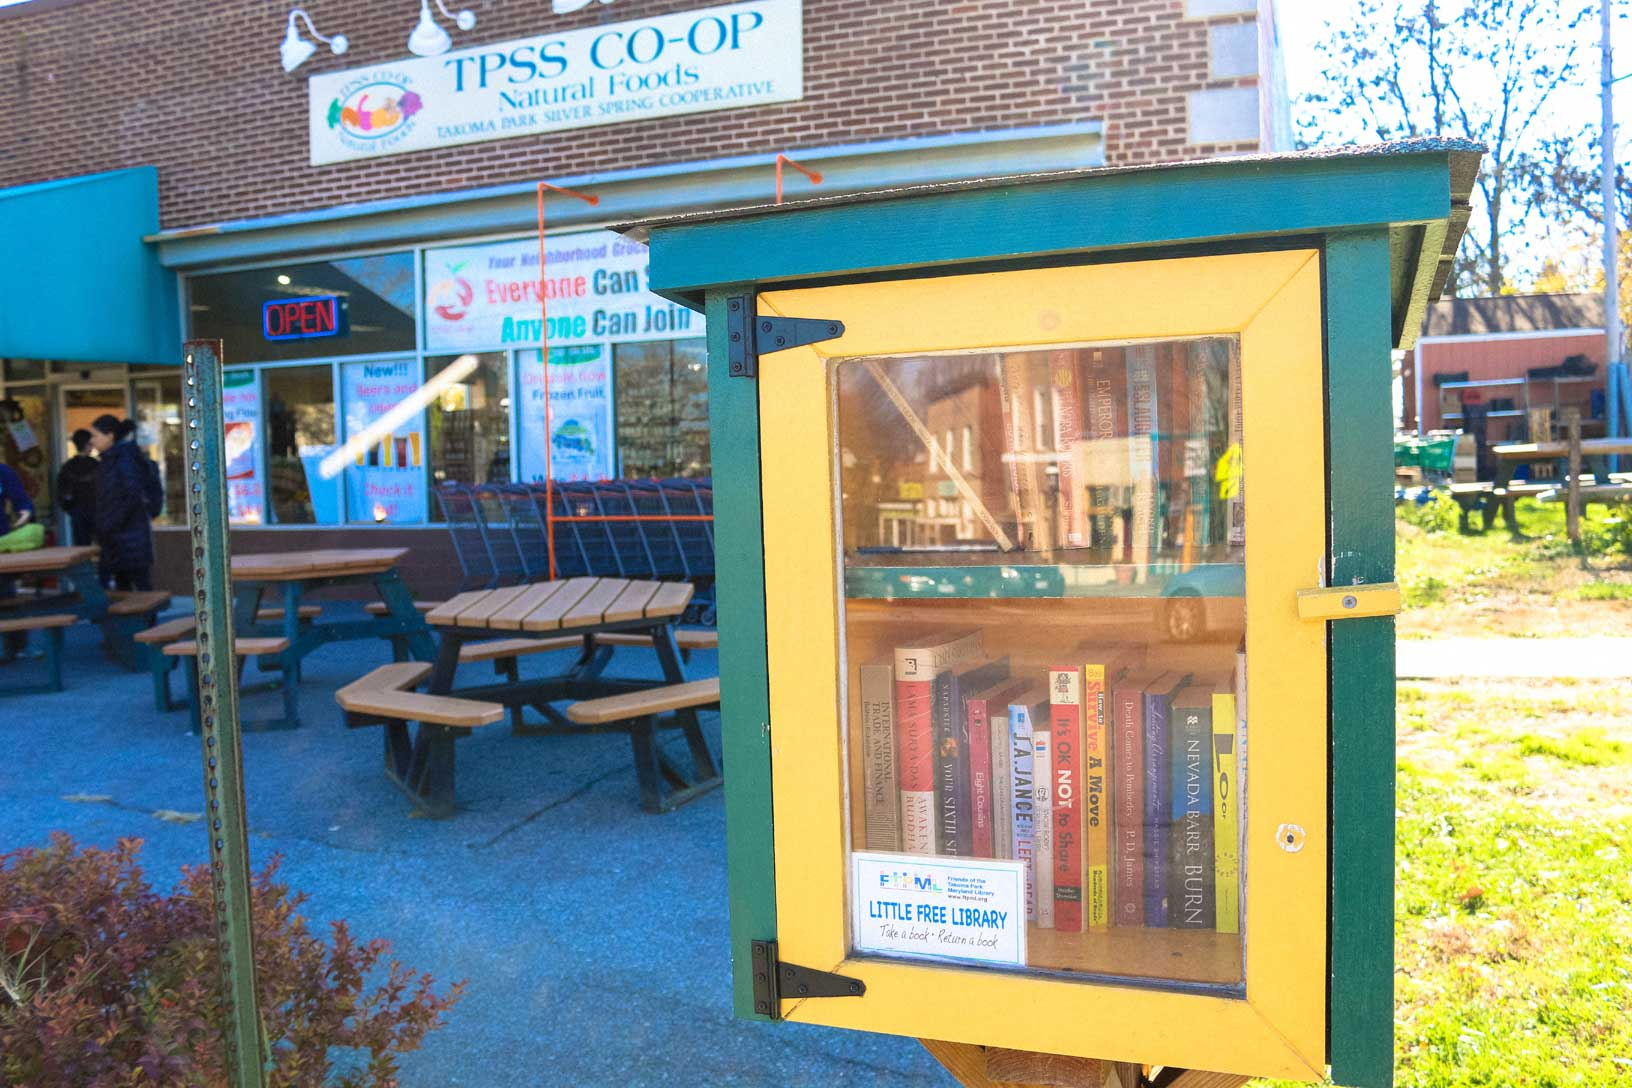 Little Free Library in Takoma Park, MD